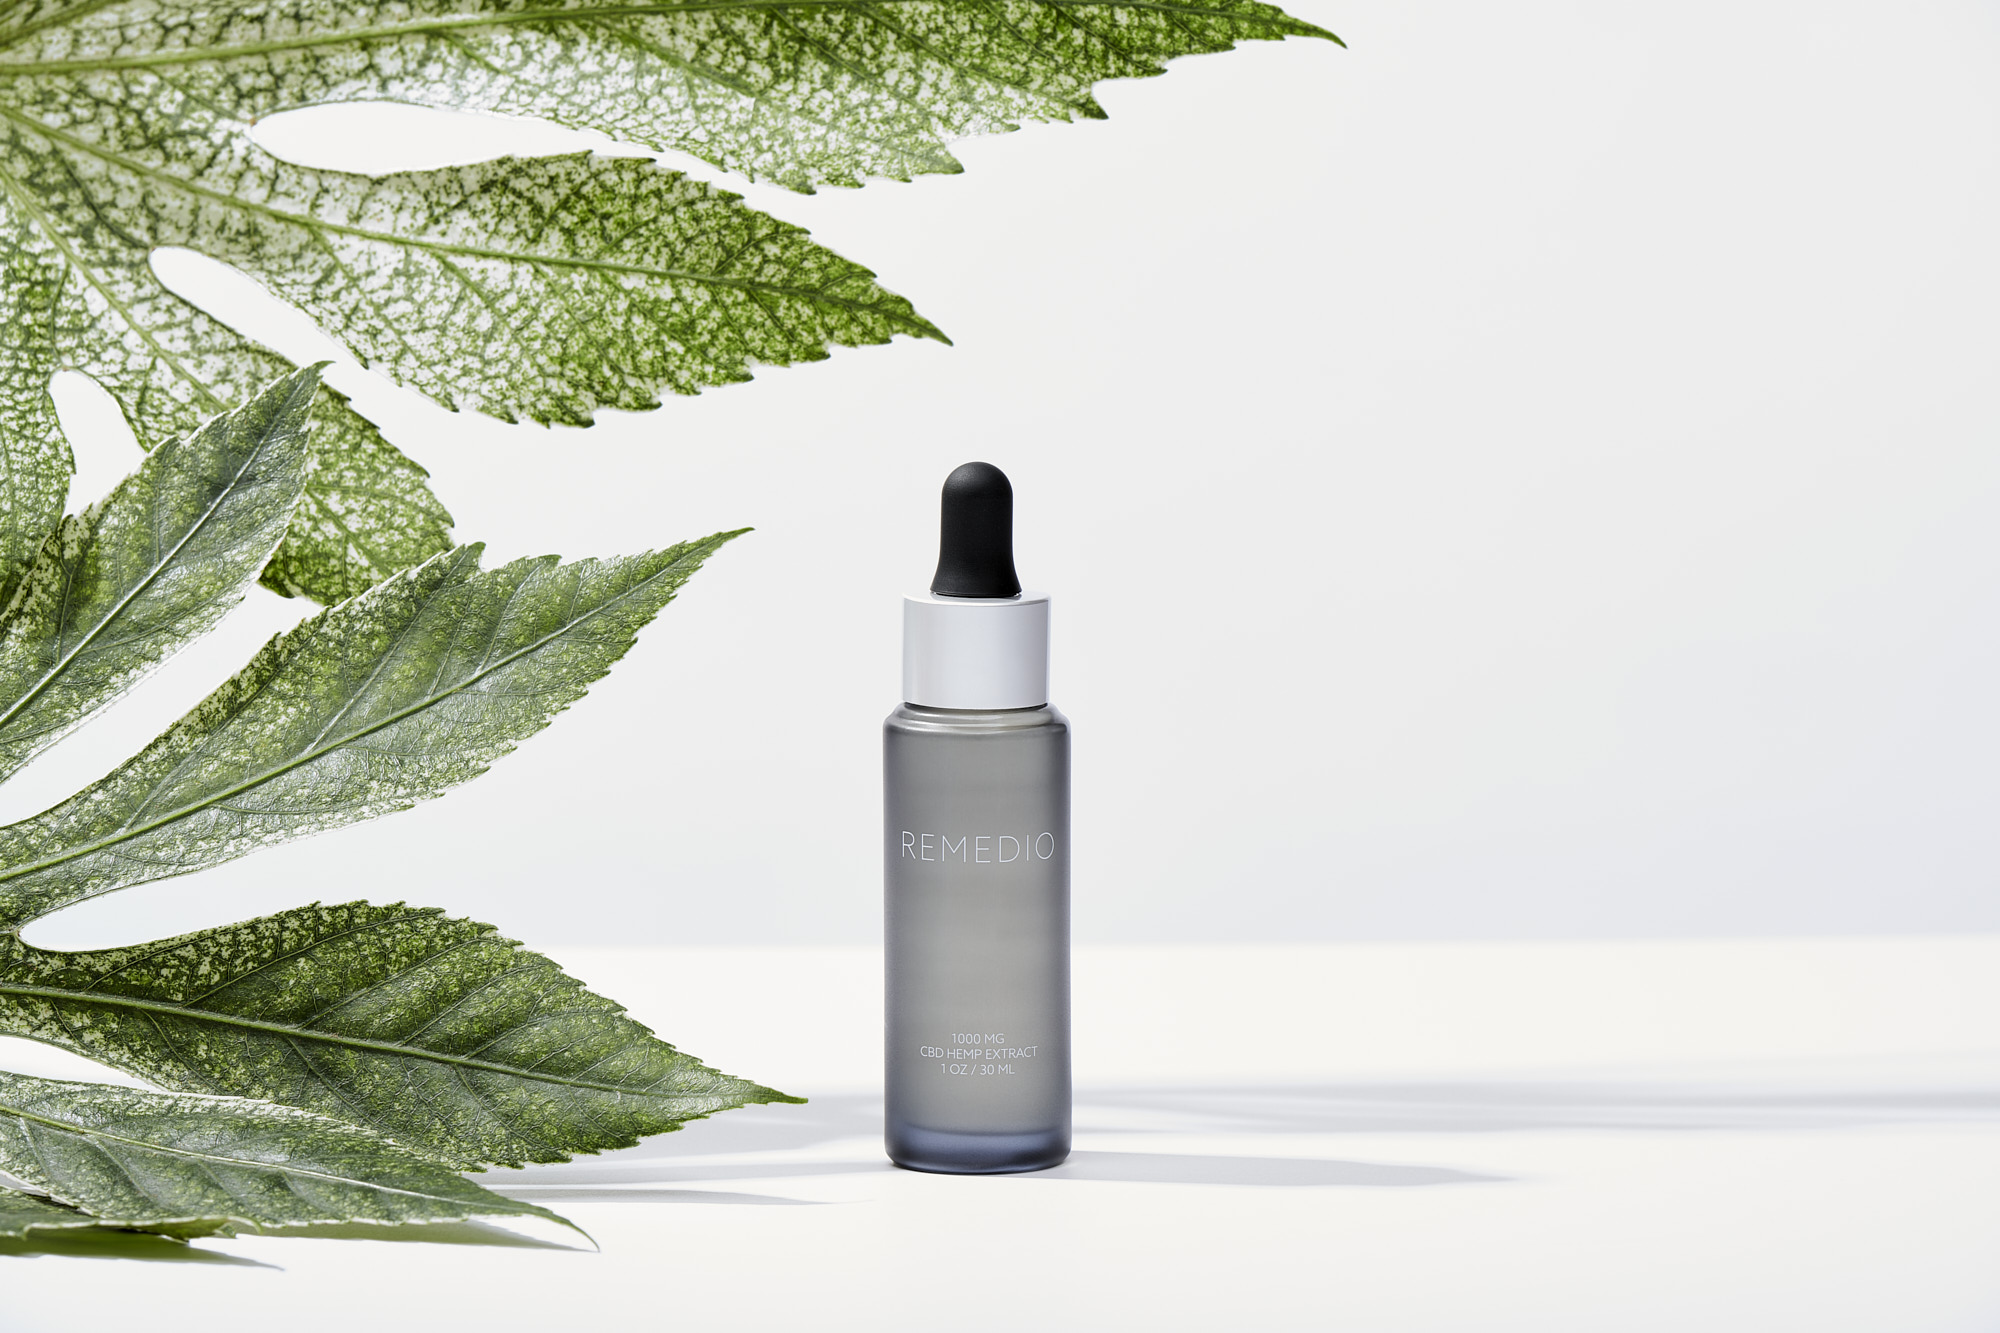 Remedio Wellness CBD Hemp Oil Product Photography by Matthew Roharik